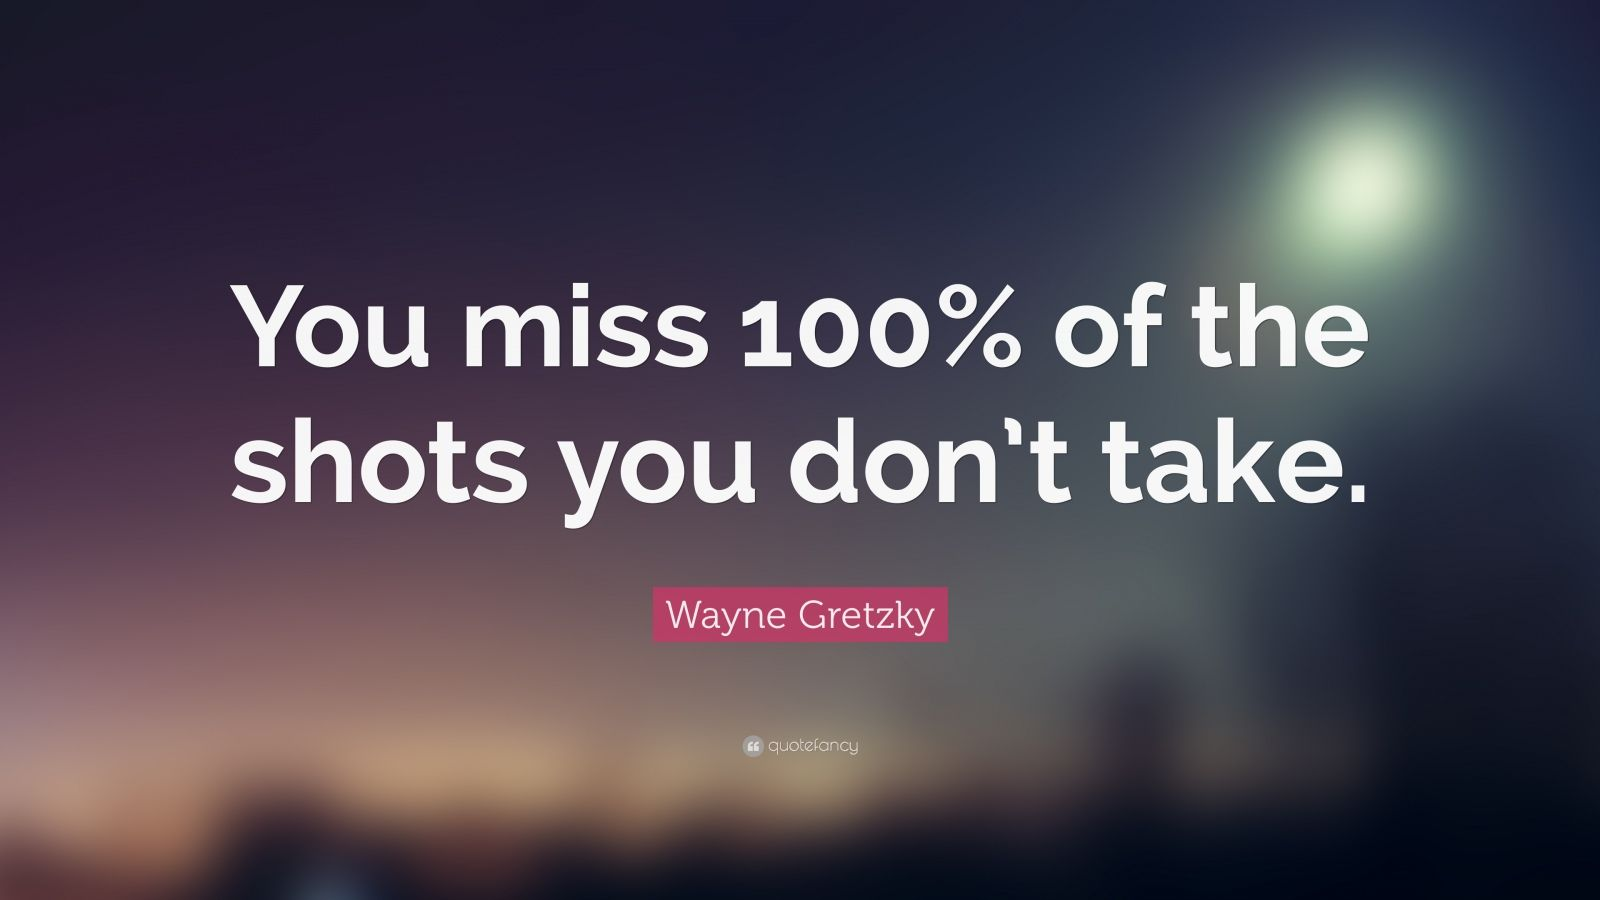 paragraph about the quote you miss 100 percent of the shots you dont take You miss 100% of the shots you don't take - lee harvey oswald (sniper who assassinated john f kennedy) actually said by wayne gretzky, canadian former professional ice hockey player and former head coach.